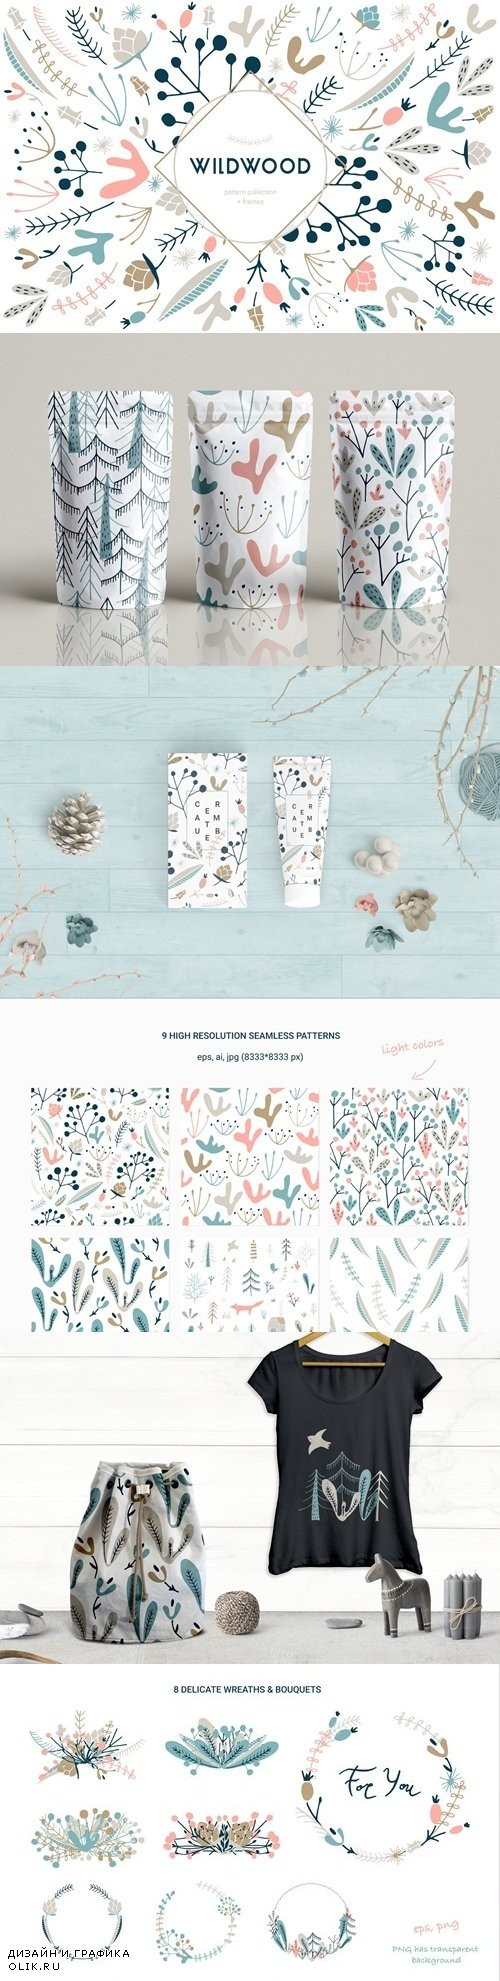 Wildwood pattern collection 2108082